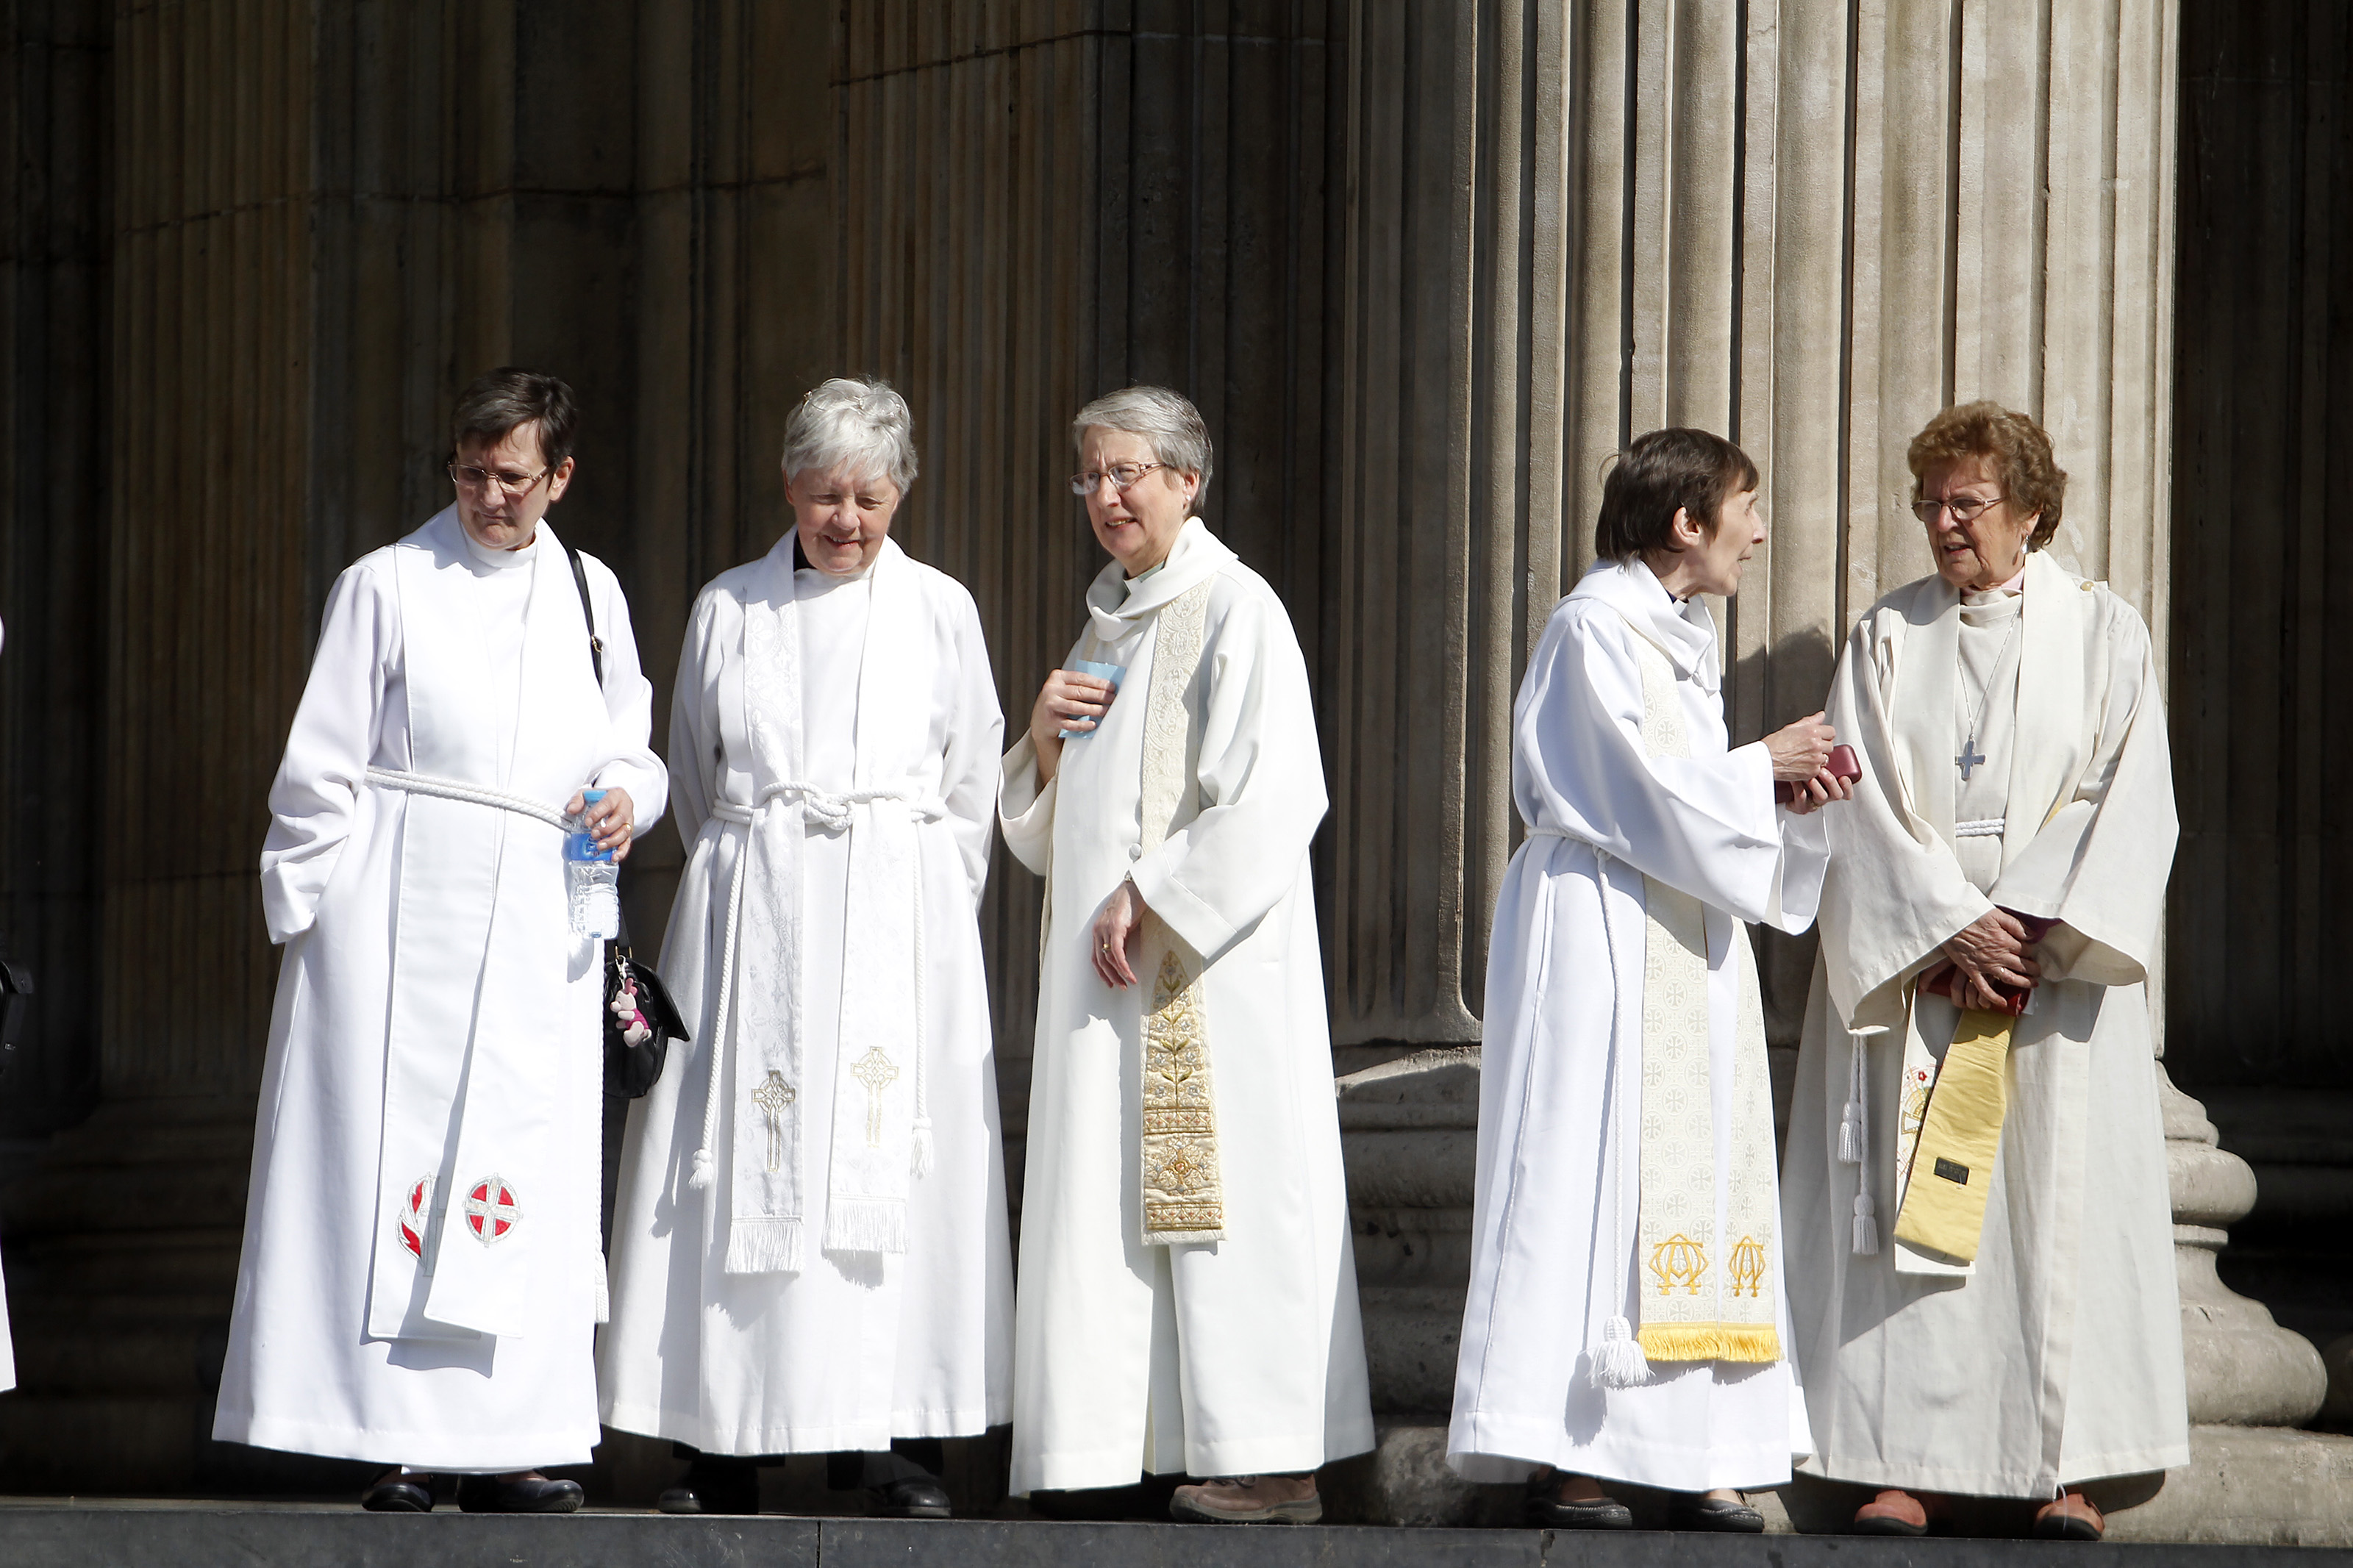 roman catholic women priests are appointing themselves the role the